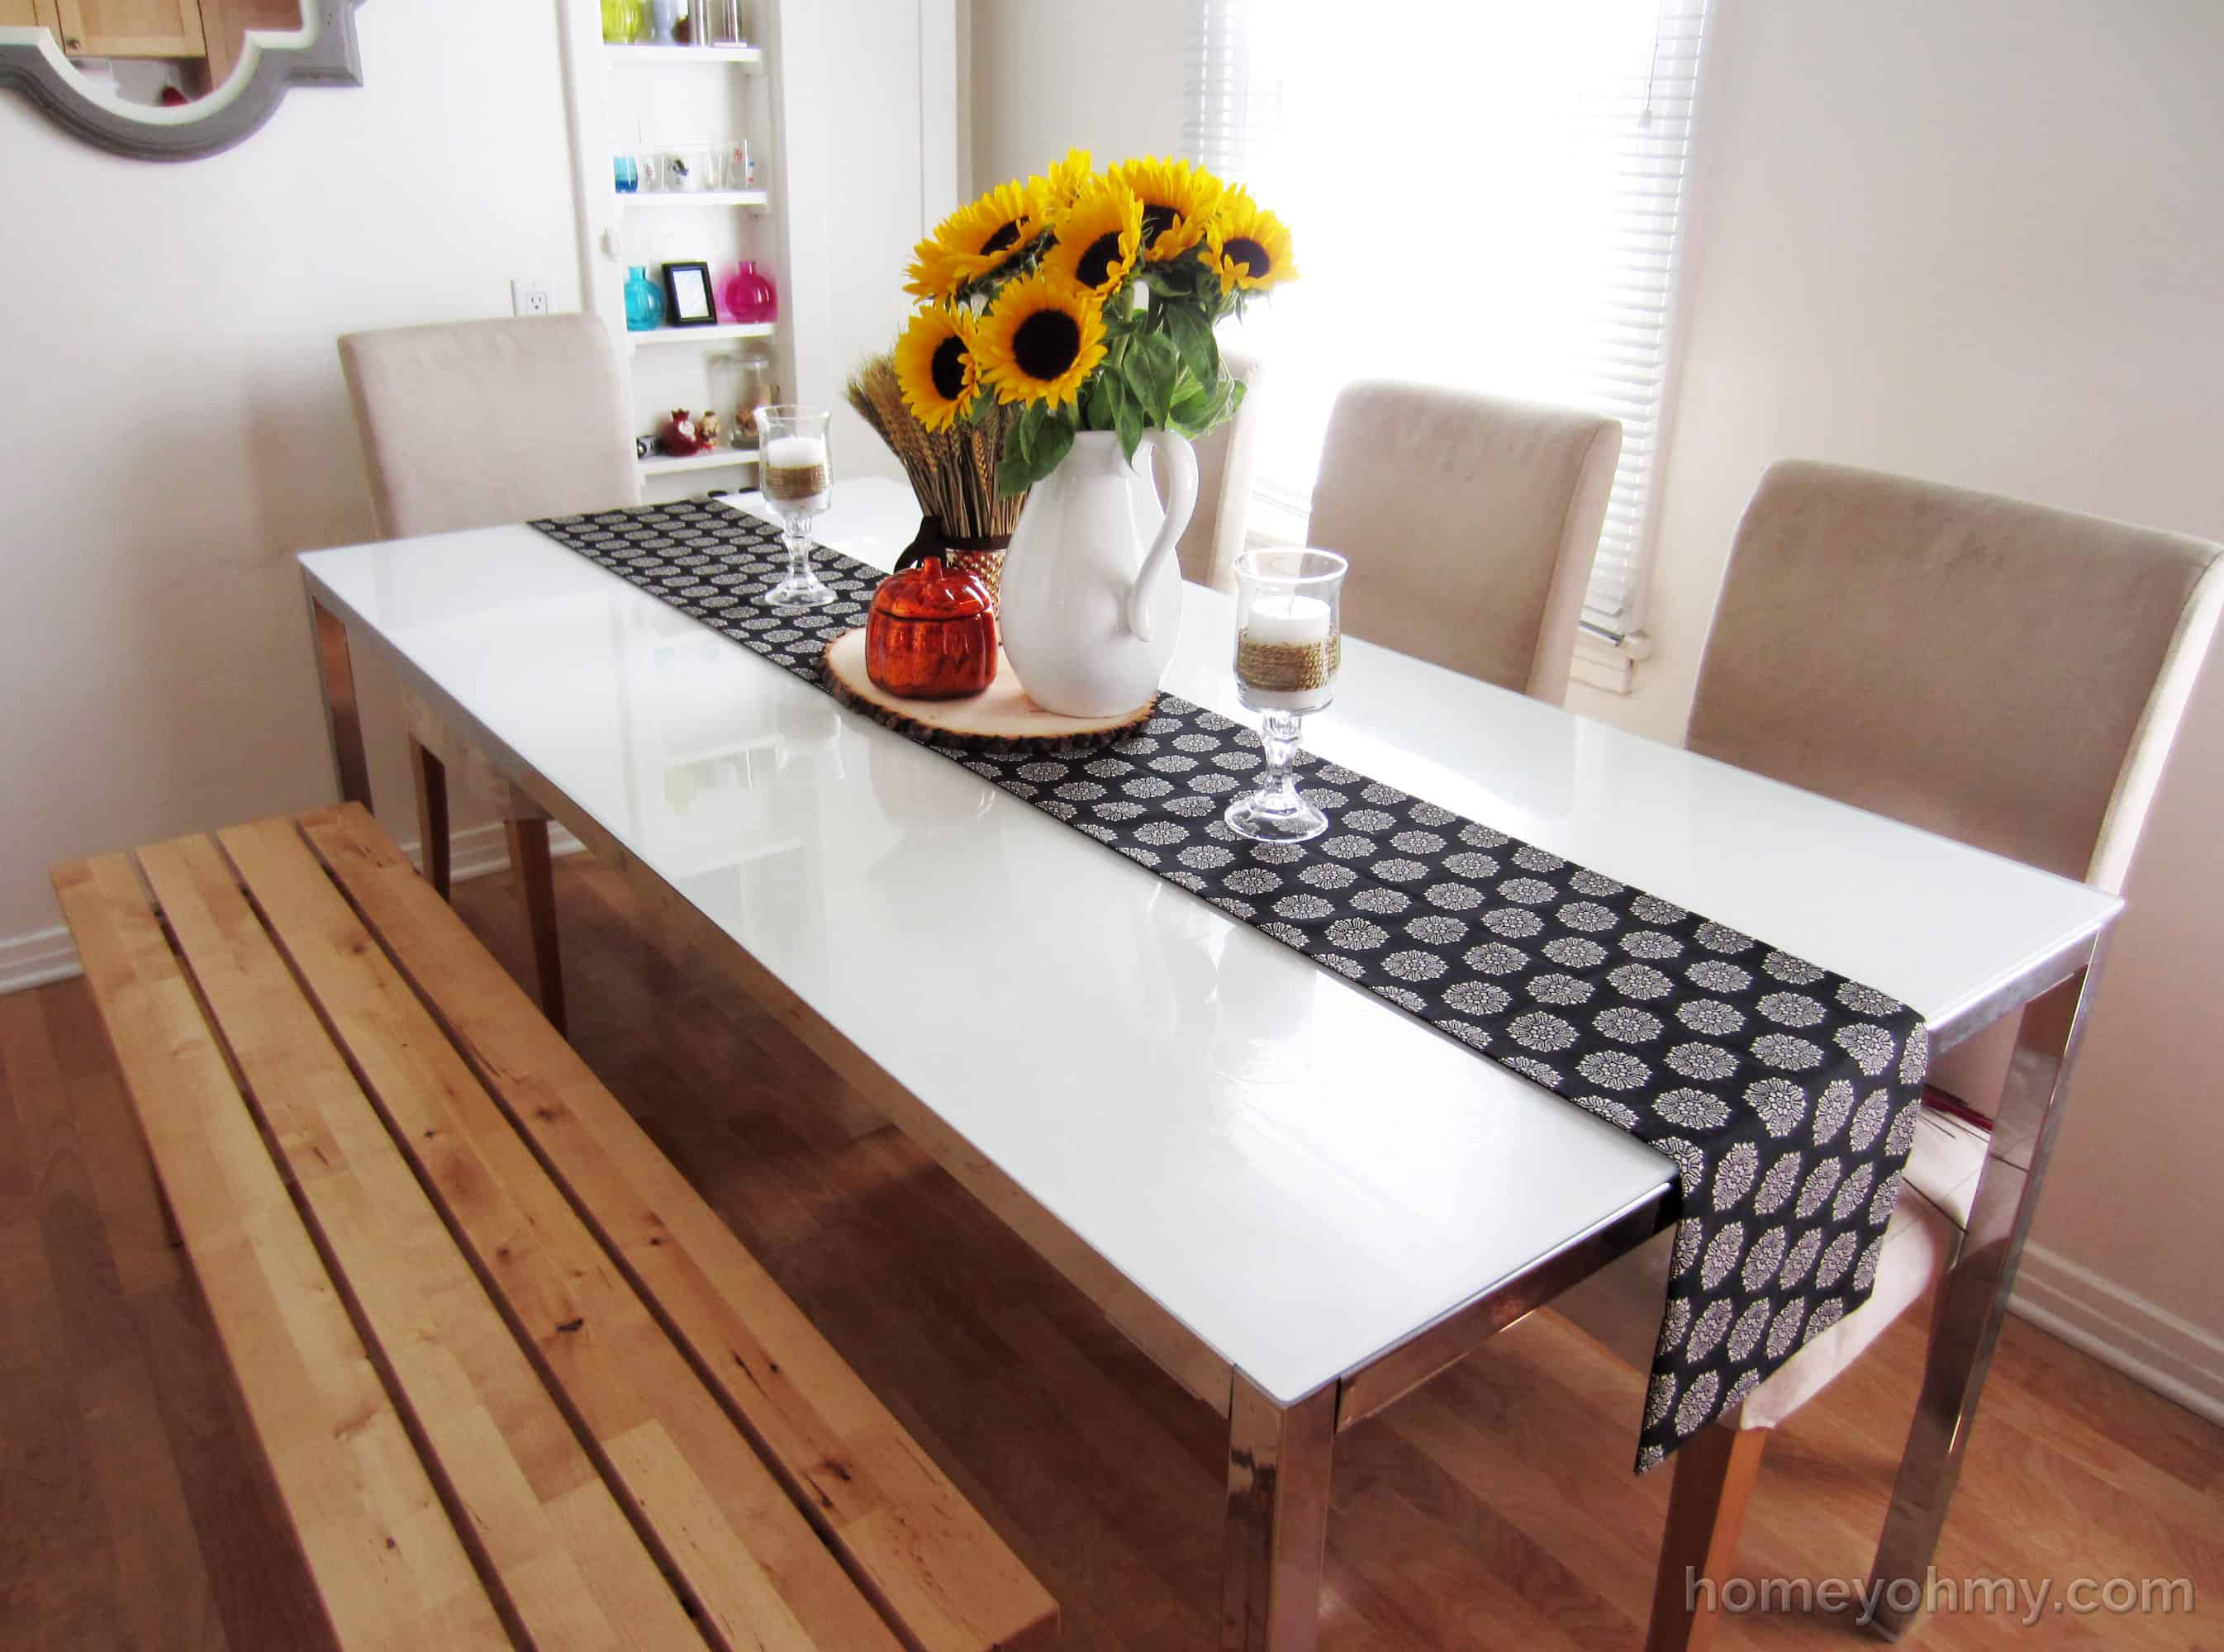 No-sew fabric table runner